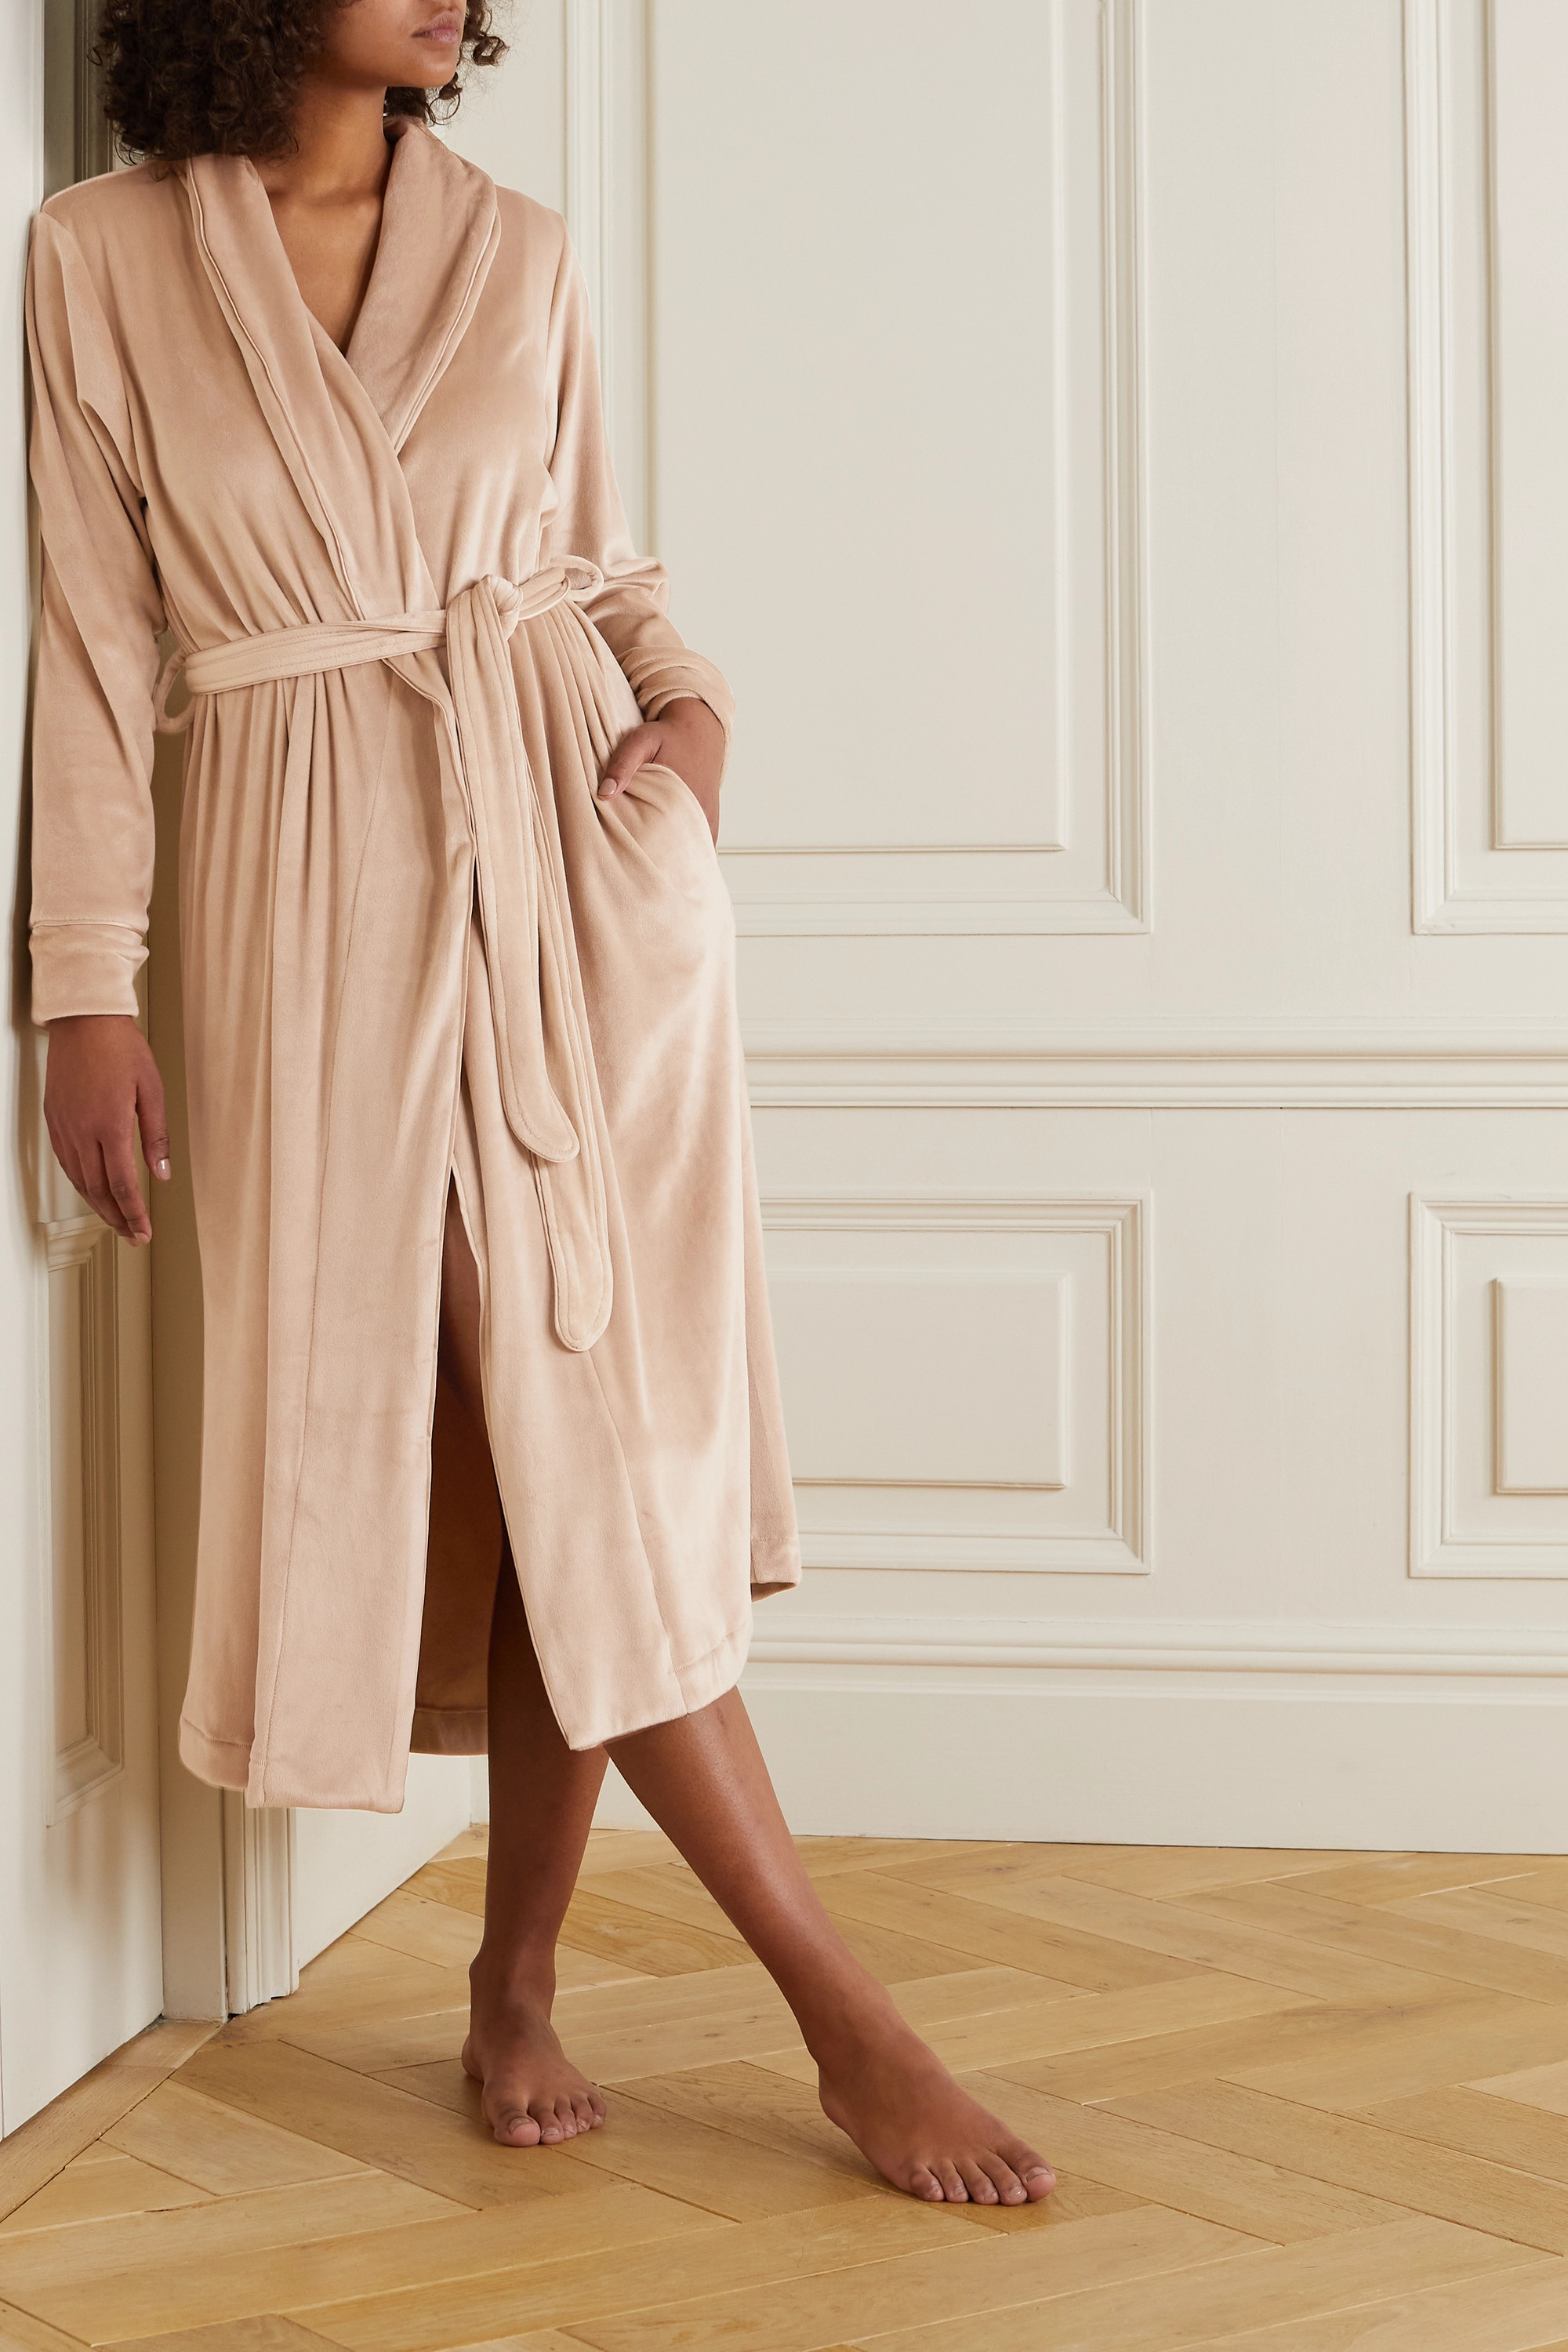 SKIMS Velour robe - Honey